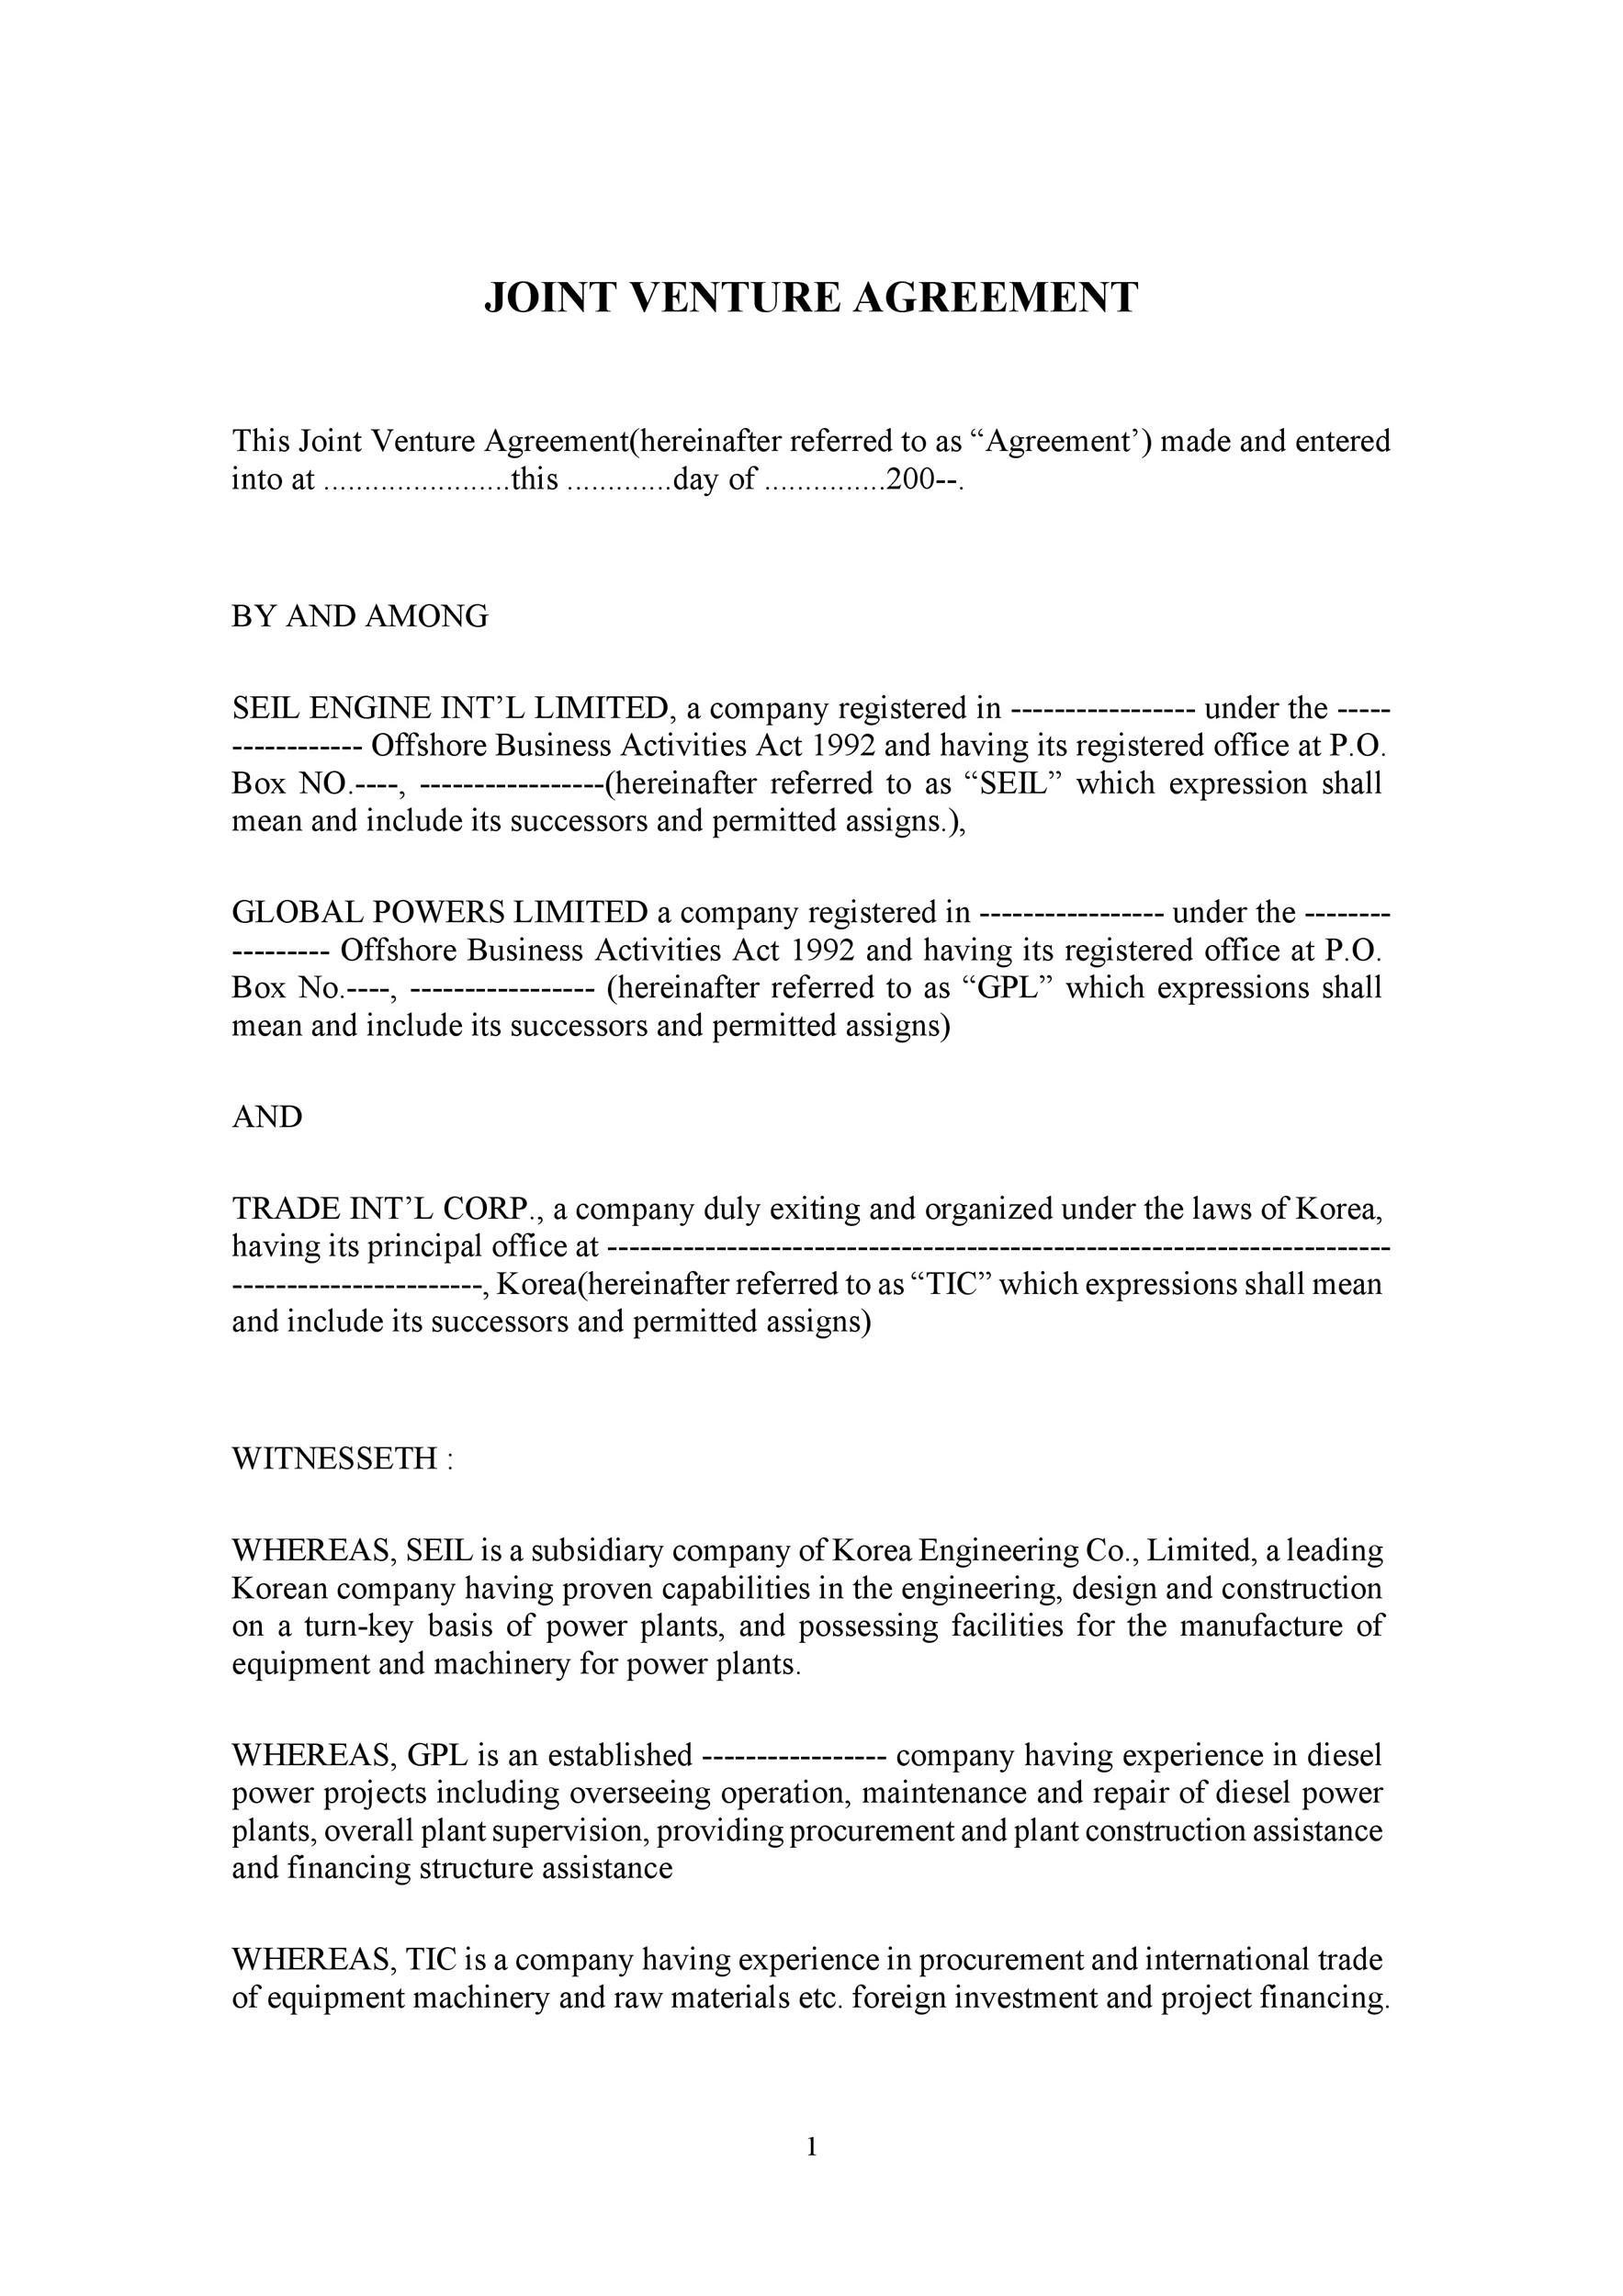 53 Simple Joint Venture Agreement Templates PDF, DOC - Template Lab - joint venture agreements sample